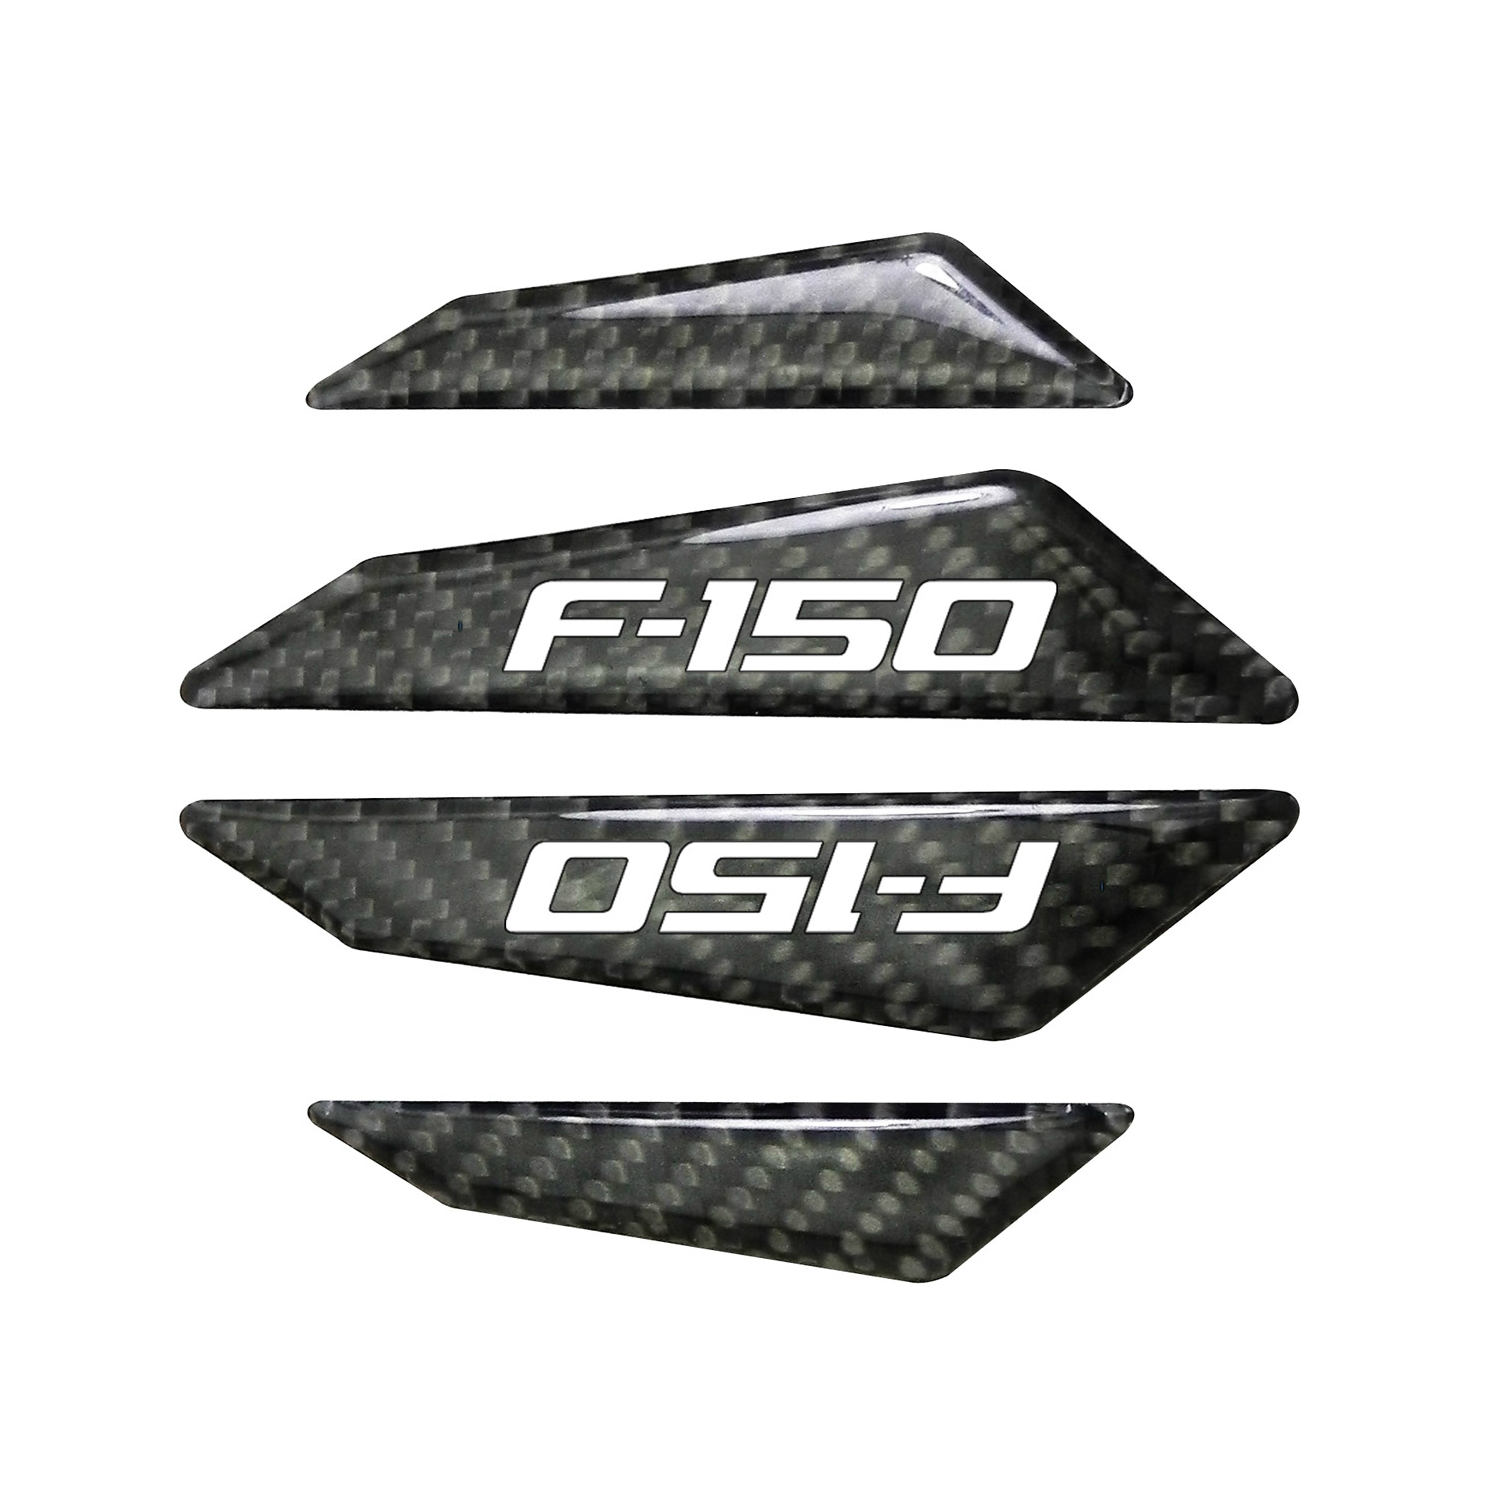 Ford F-150 2009-2014 Real Black Carbon Fiber Door Edge Guard Decal